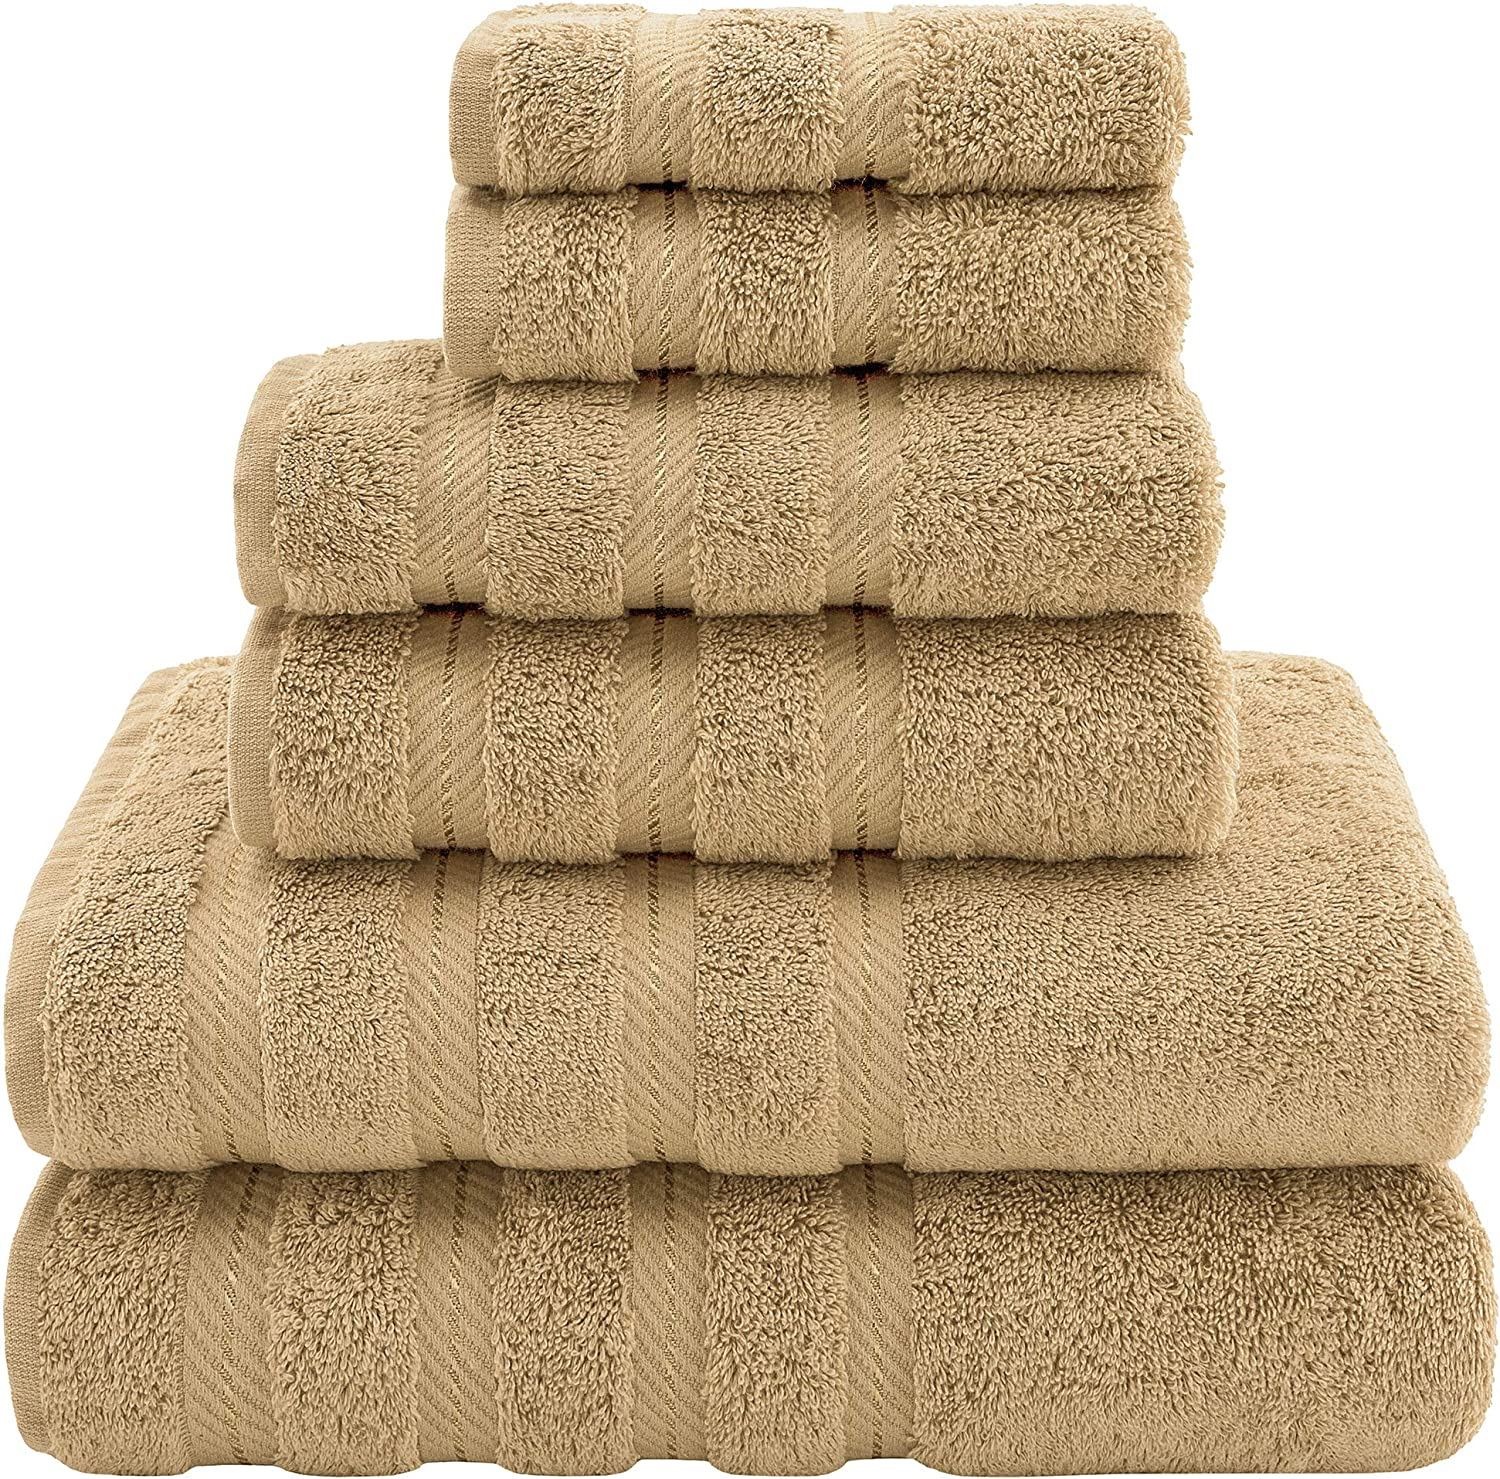 American Soft Linen Premium, Luxury Hotel & Spa Quality, 6 Piece Kitchen & Bathroom Turkish Genuine Cotton Towel Set, for Maximum Softness & Absorbency, [Worth $72.95] Sand Taupe